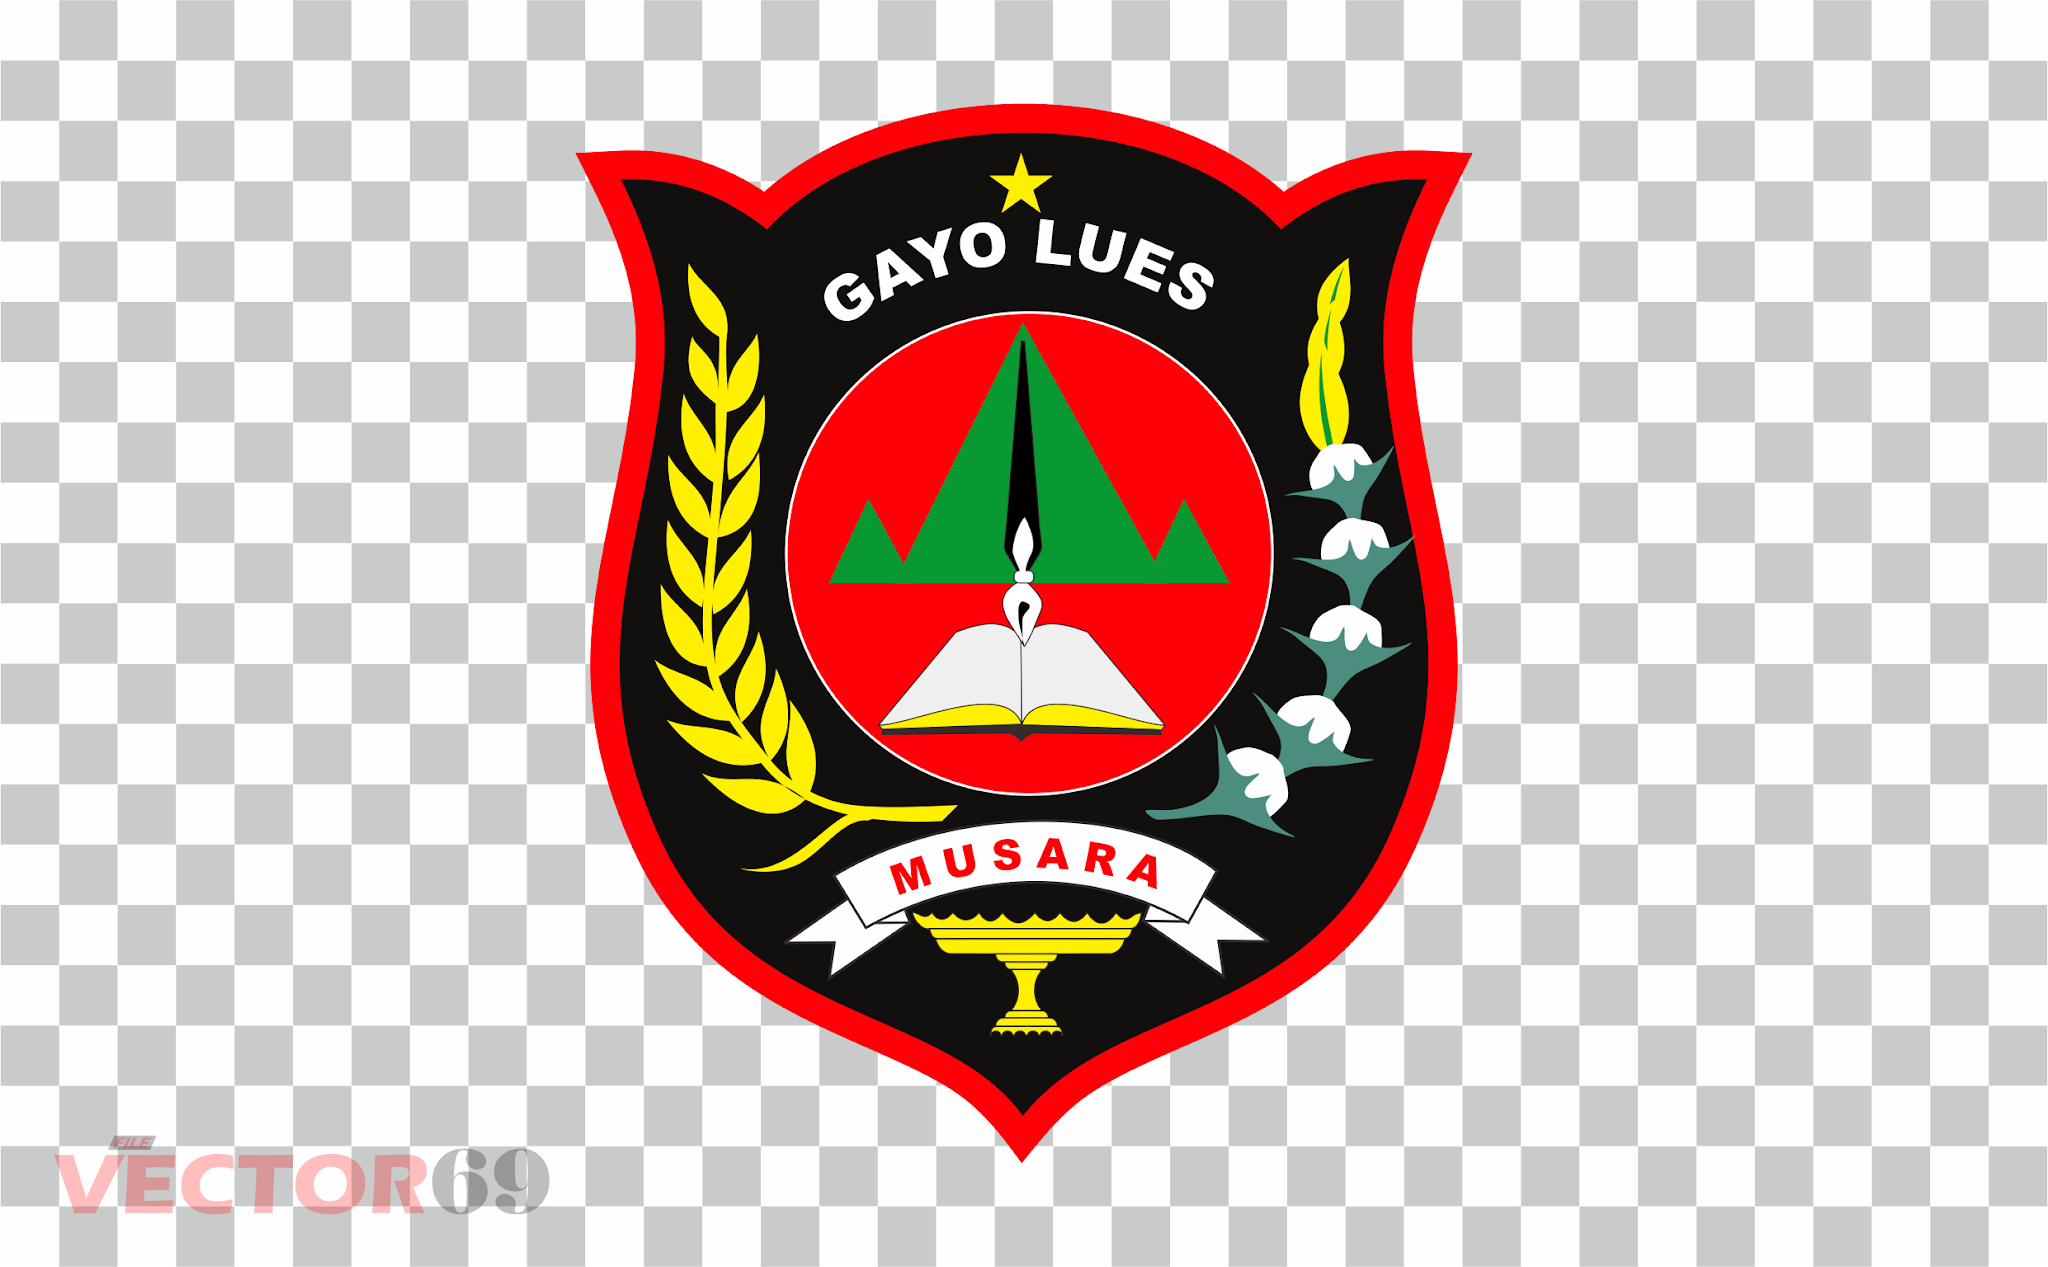 Kabupaten Gayo Lues Logo - Download Vector File PNG (Portable Network Graphics)